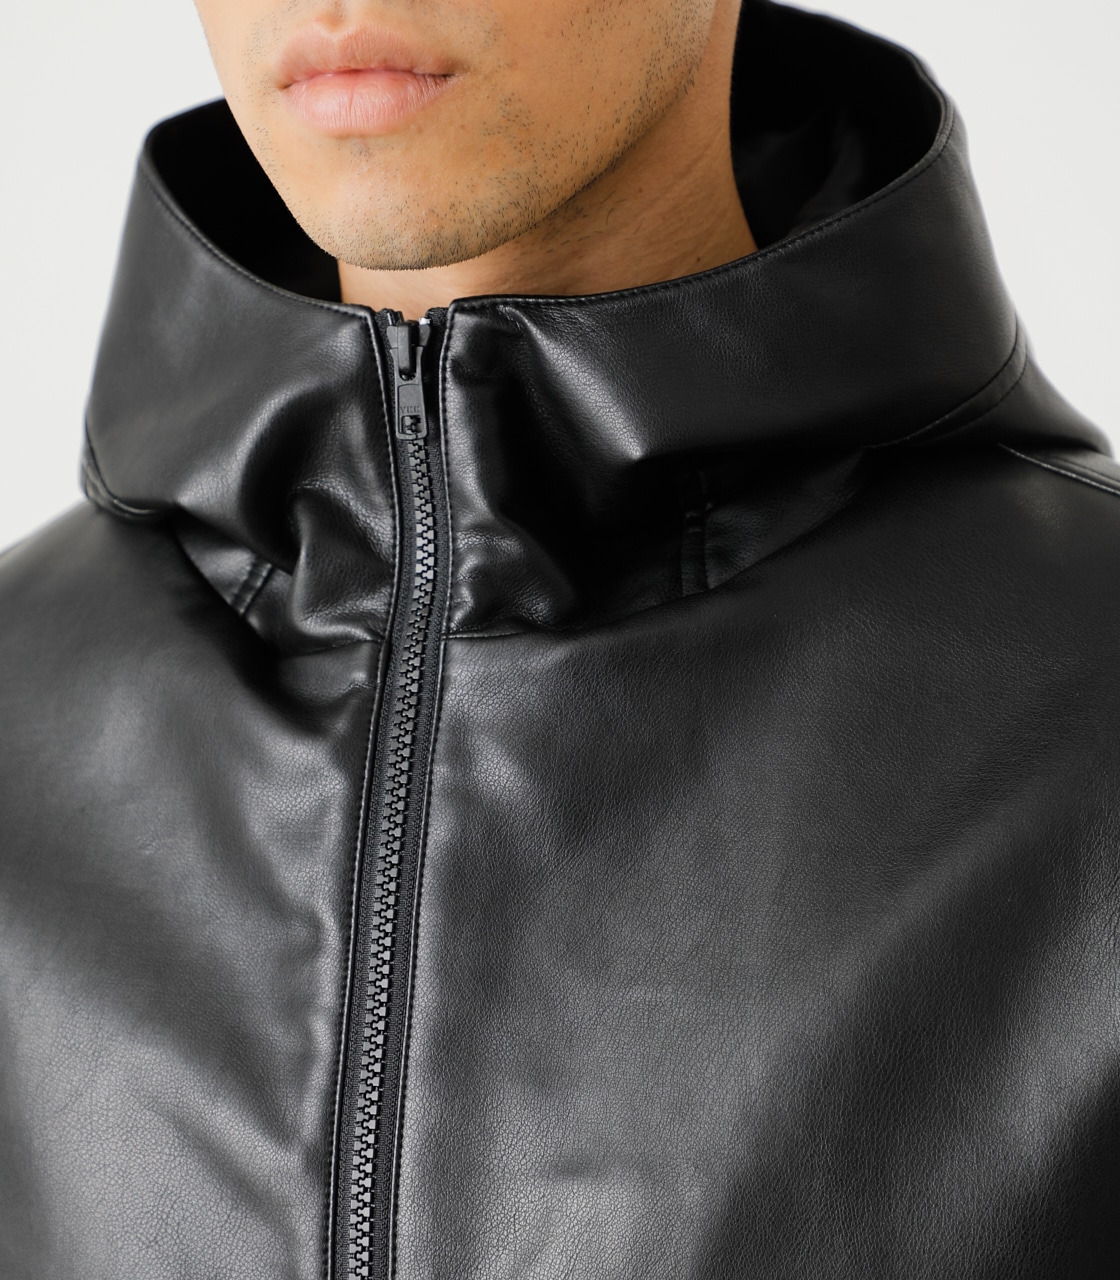 ECO LEATHER HOODED/エコレザーフーデッド 詳細画像 BLK 9